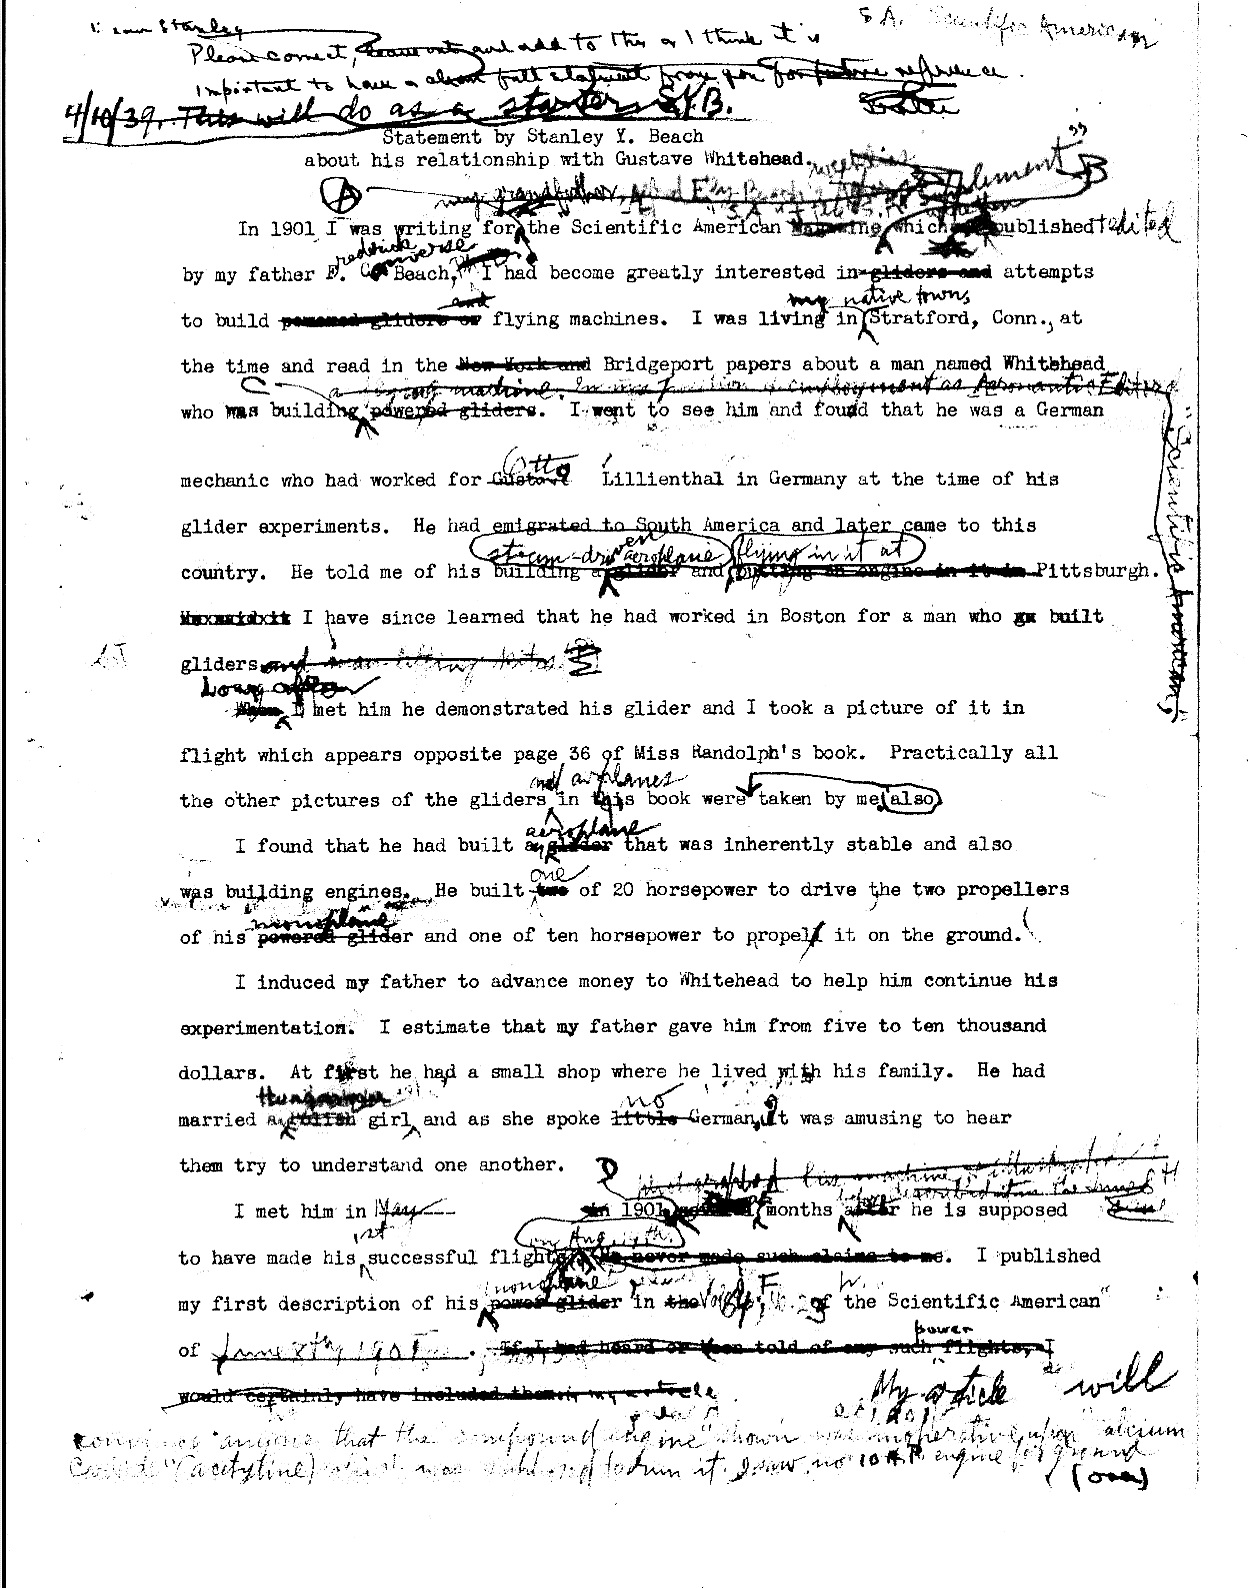 smithsonian conspiracy to deny whitehead flew first now provable beach whitehead statement draft 1 p 1 of 6 heavy edits including